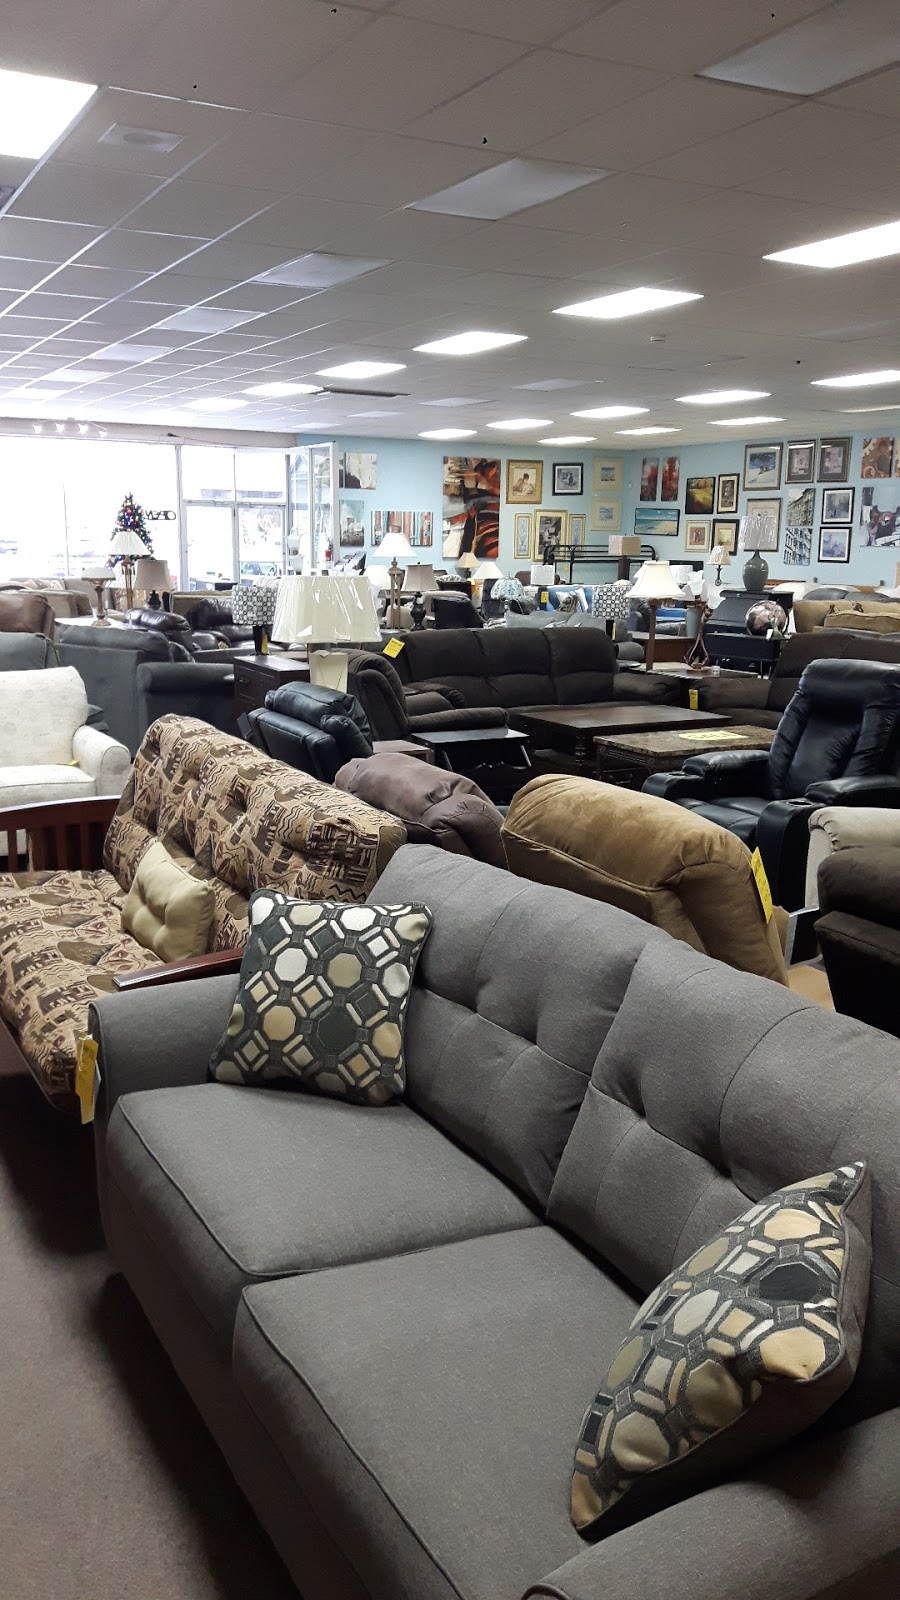 Main-West Furniture Appliances & Carpeting   furniture store   41 Main St W, Kingsville, ON N9Y 1H2, Canada   5197332311 OR +1 519-733-2311